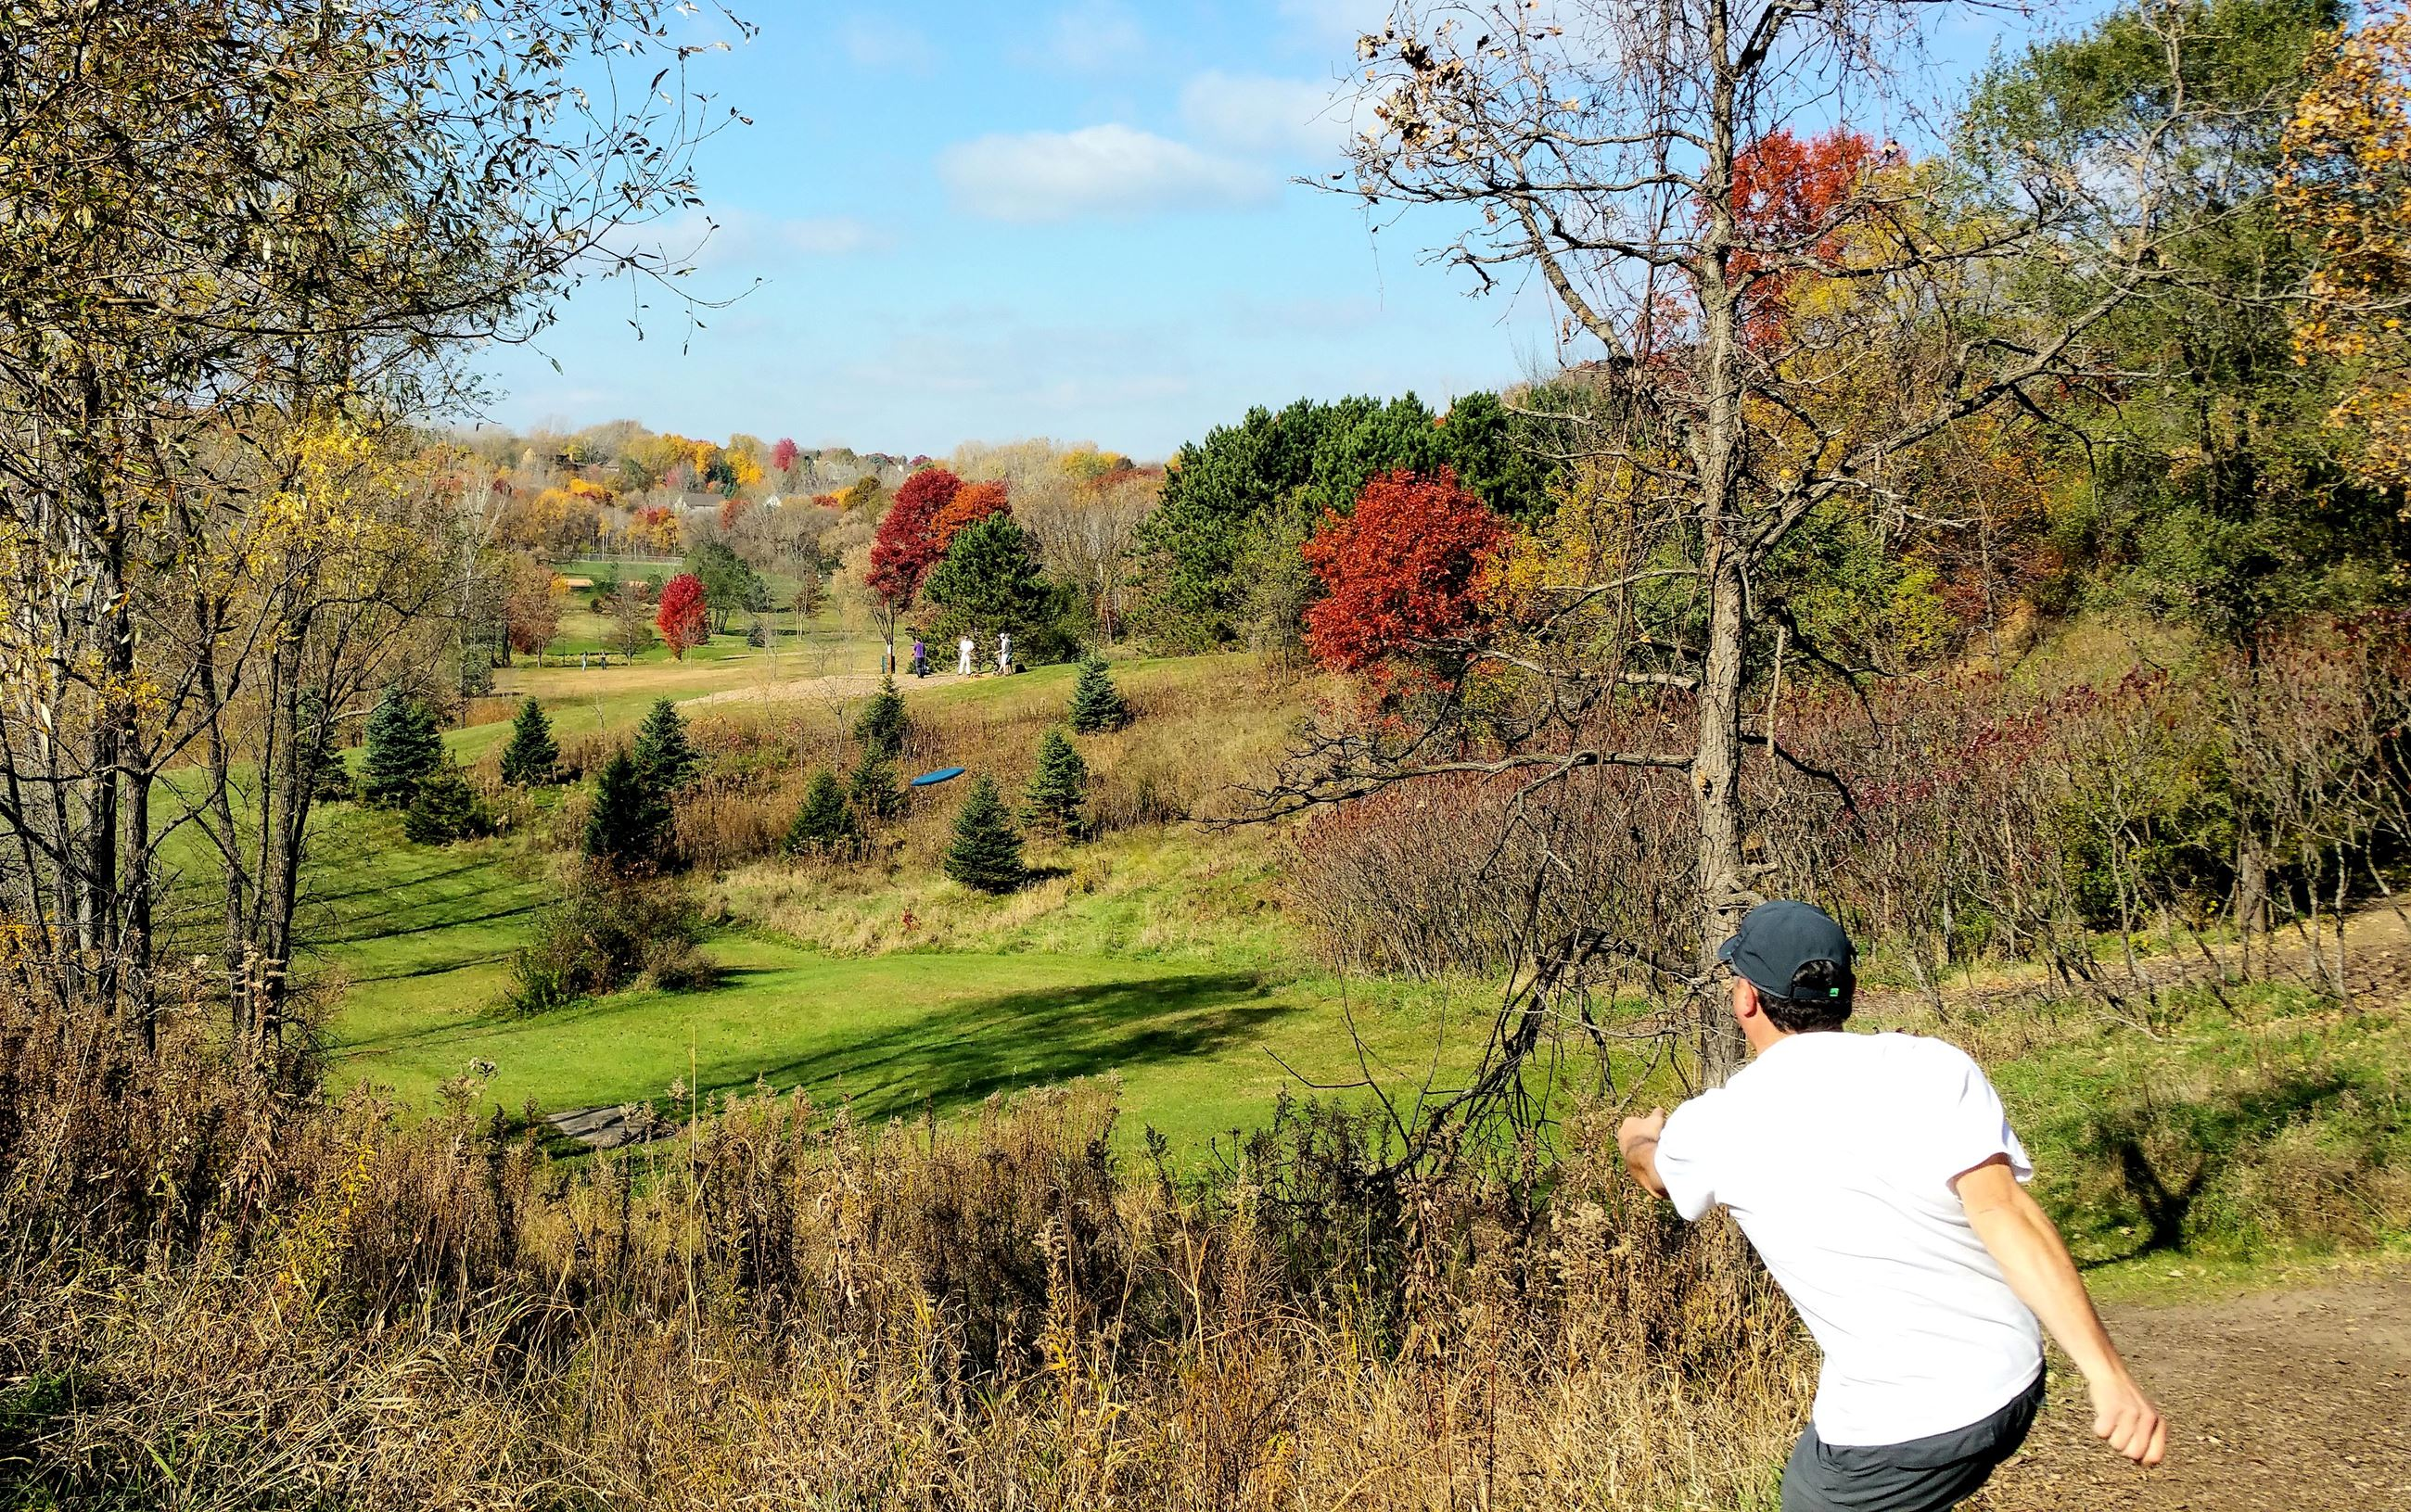 North Valley Park - Disc Golf Course